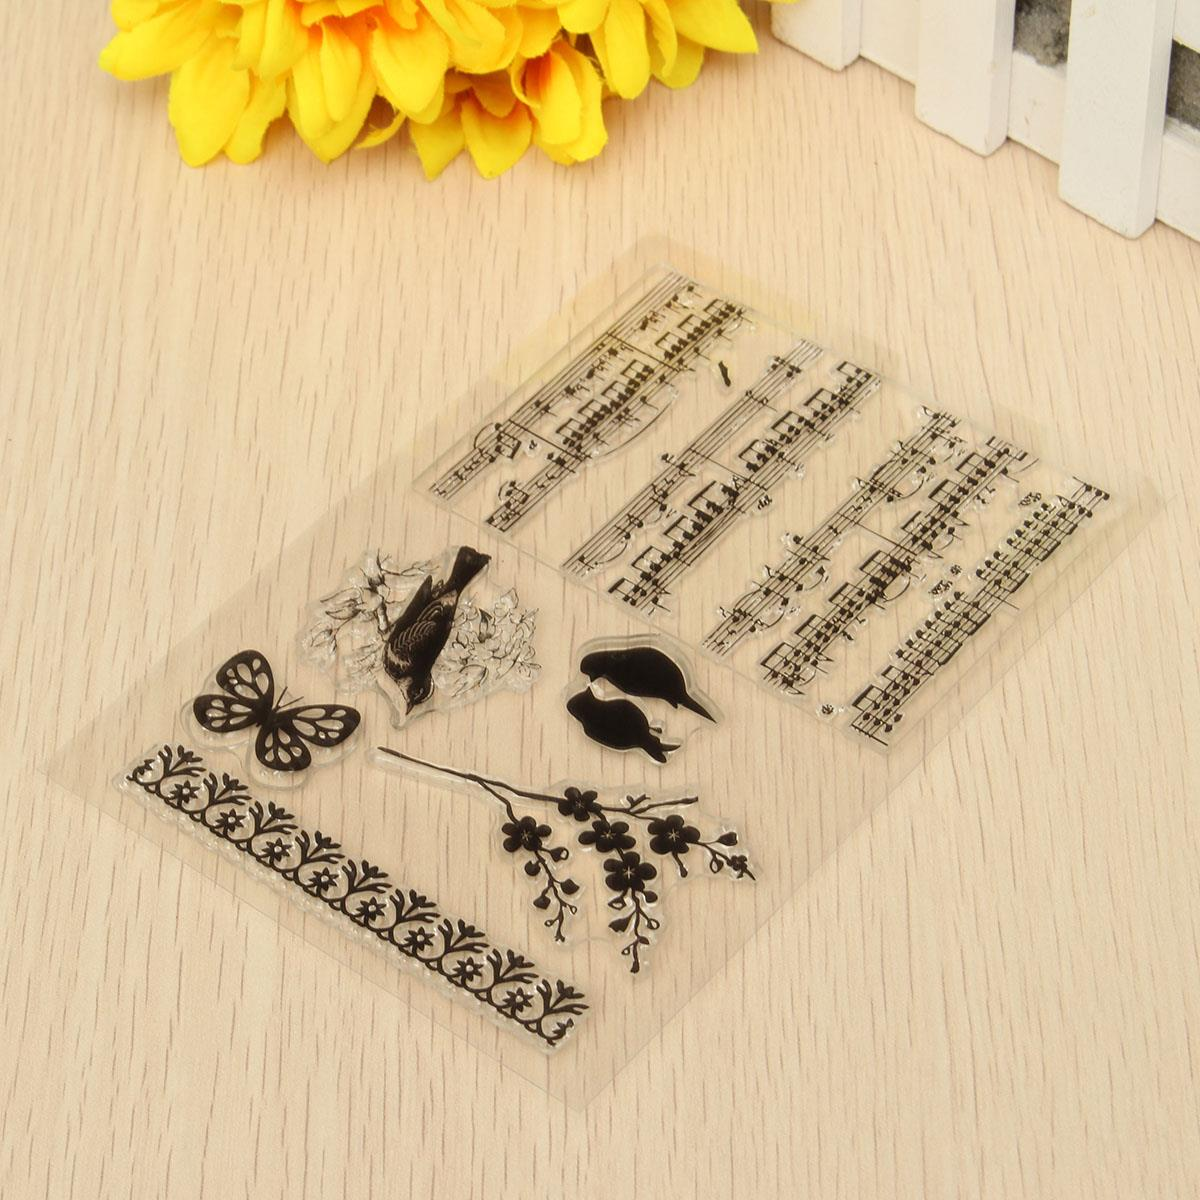 Rubber stamp craft supplies - Diy Silicone Music Notes Transparent Rubber Stamp Scrapbooking Decorative Sheets Paper Card Album Crafts Gadgets Supplies